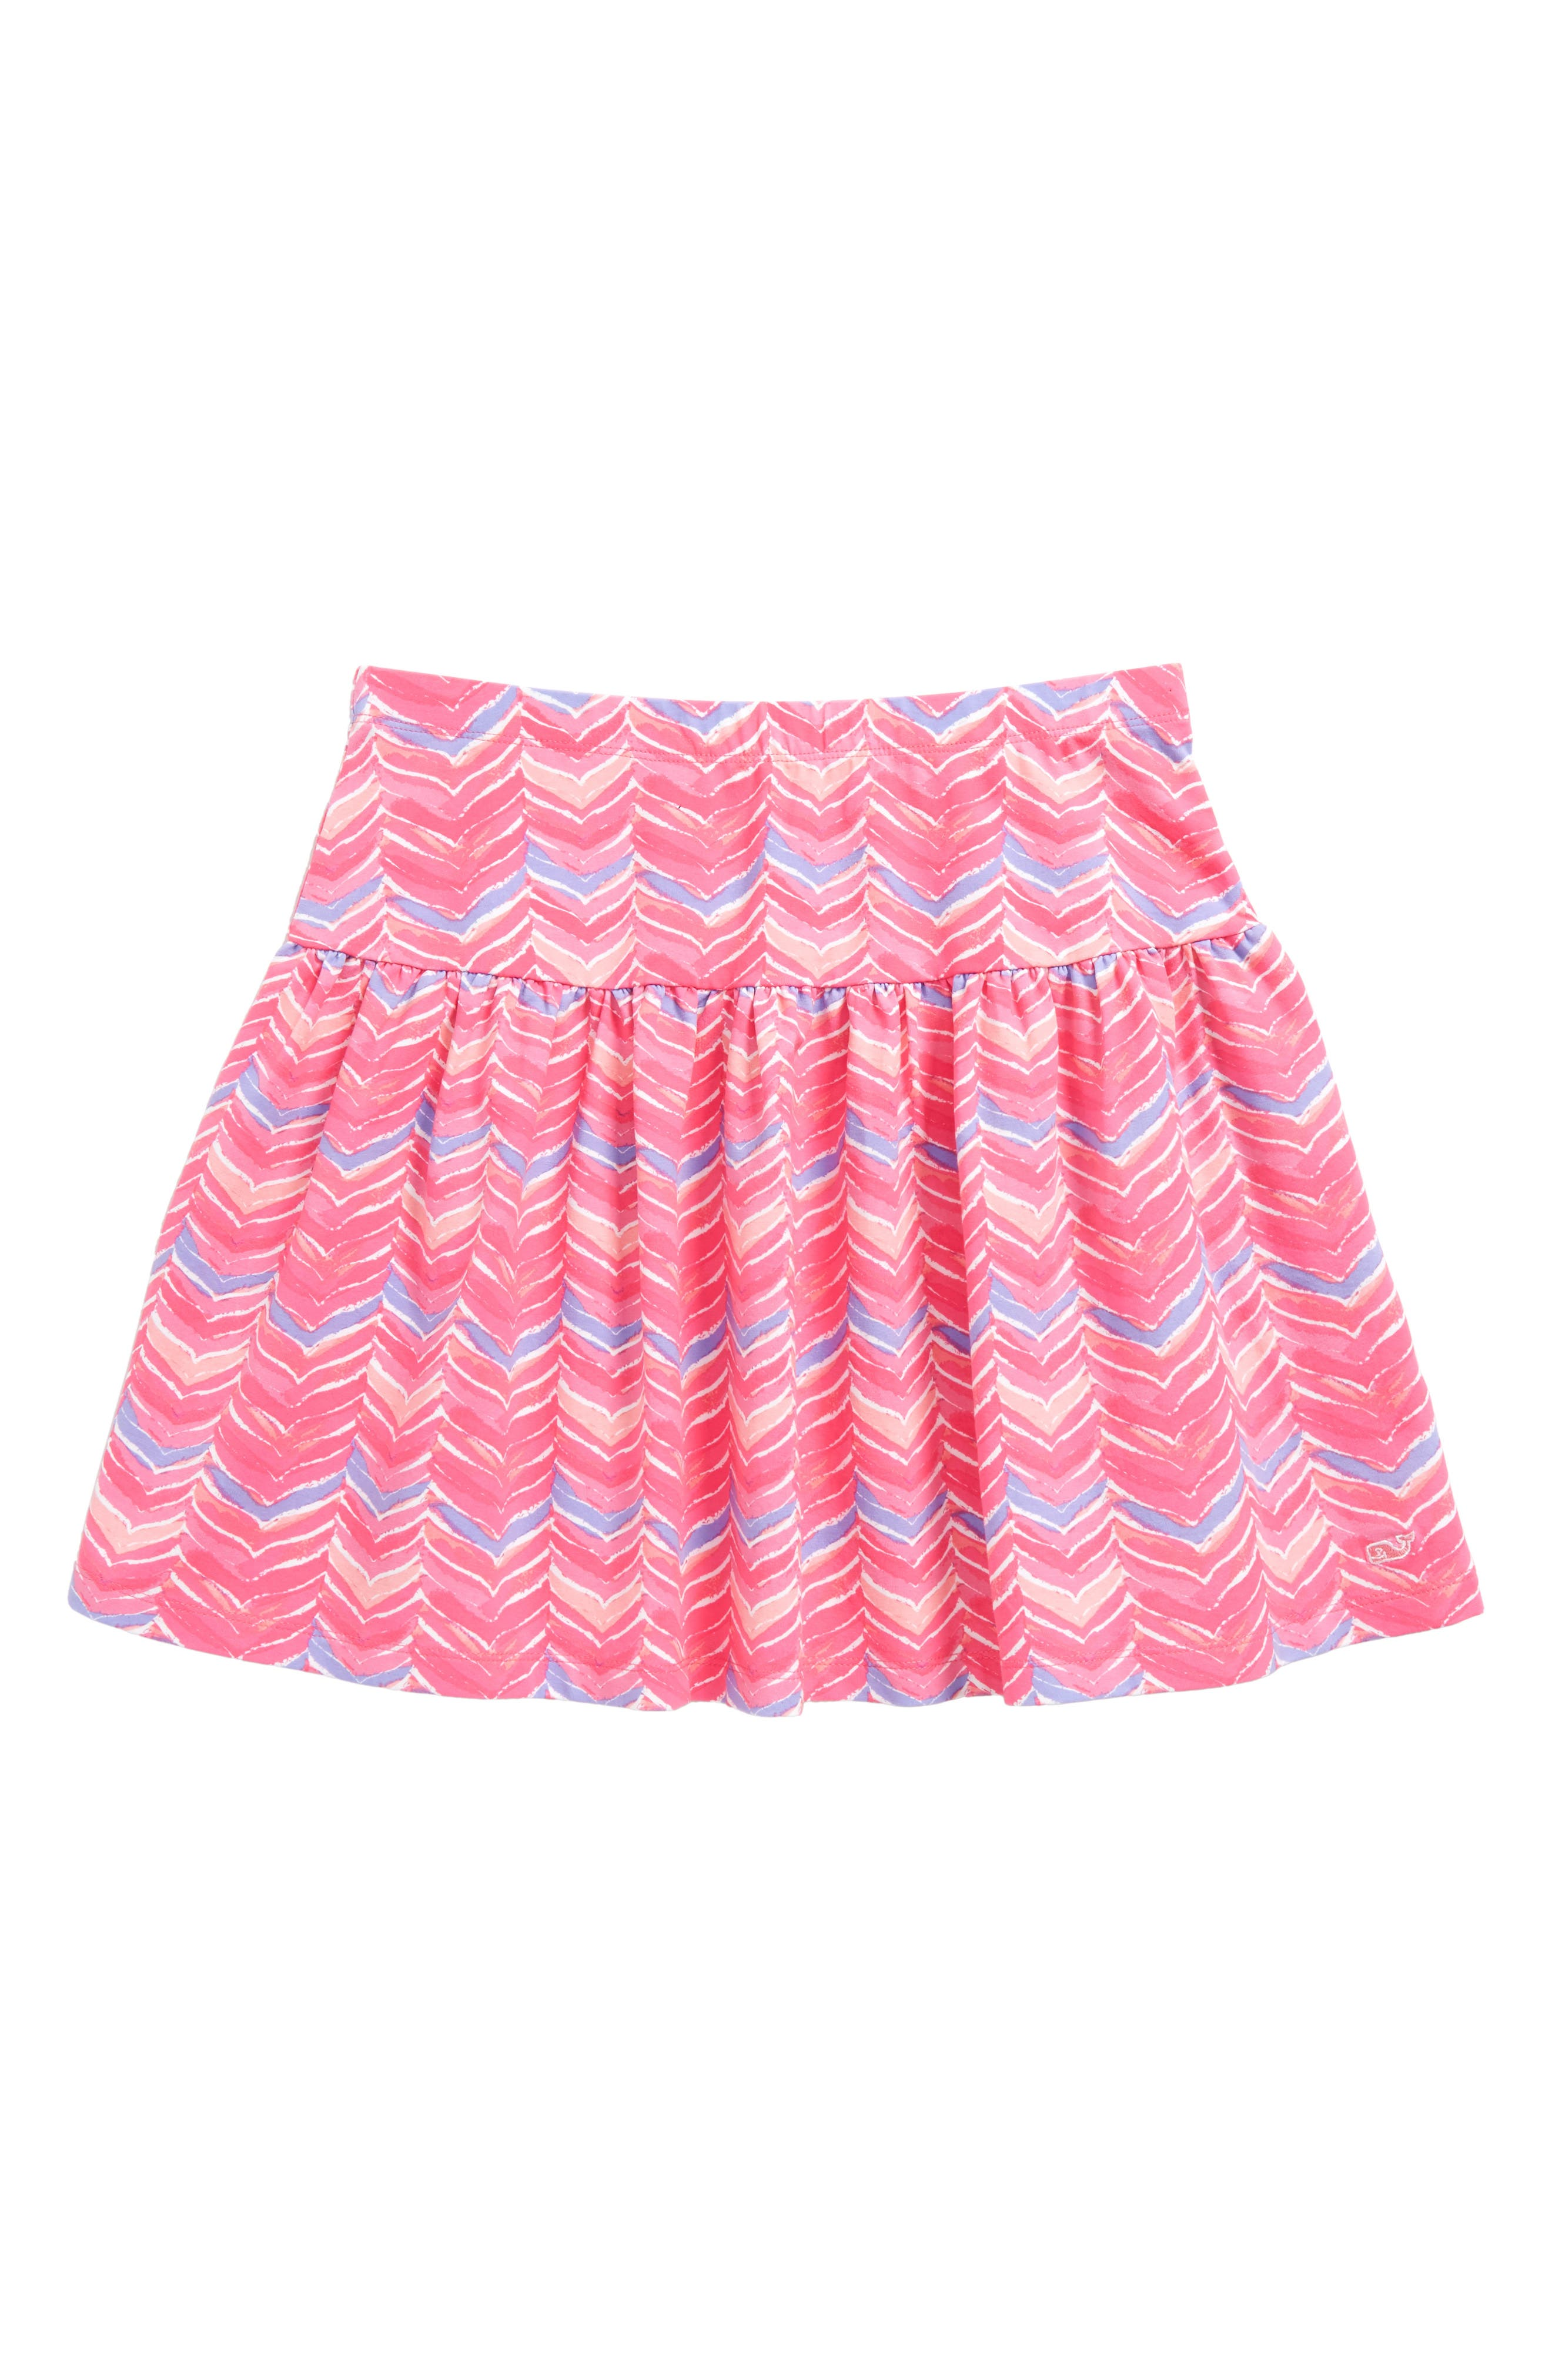 Watercolor Whale Tail Print Skirt,                         Main,                         color, 650